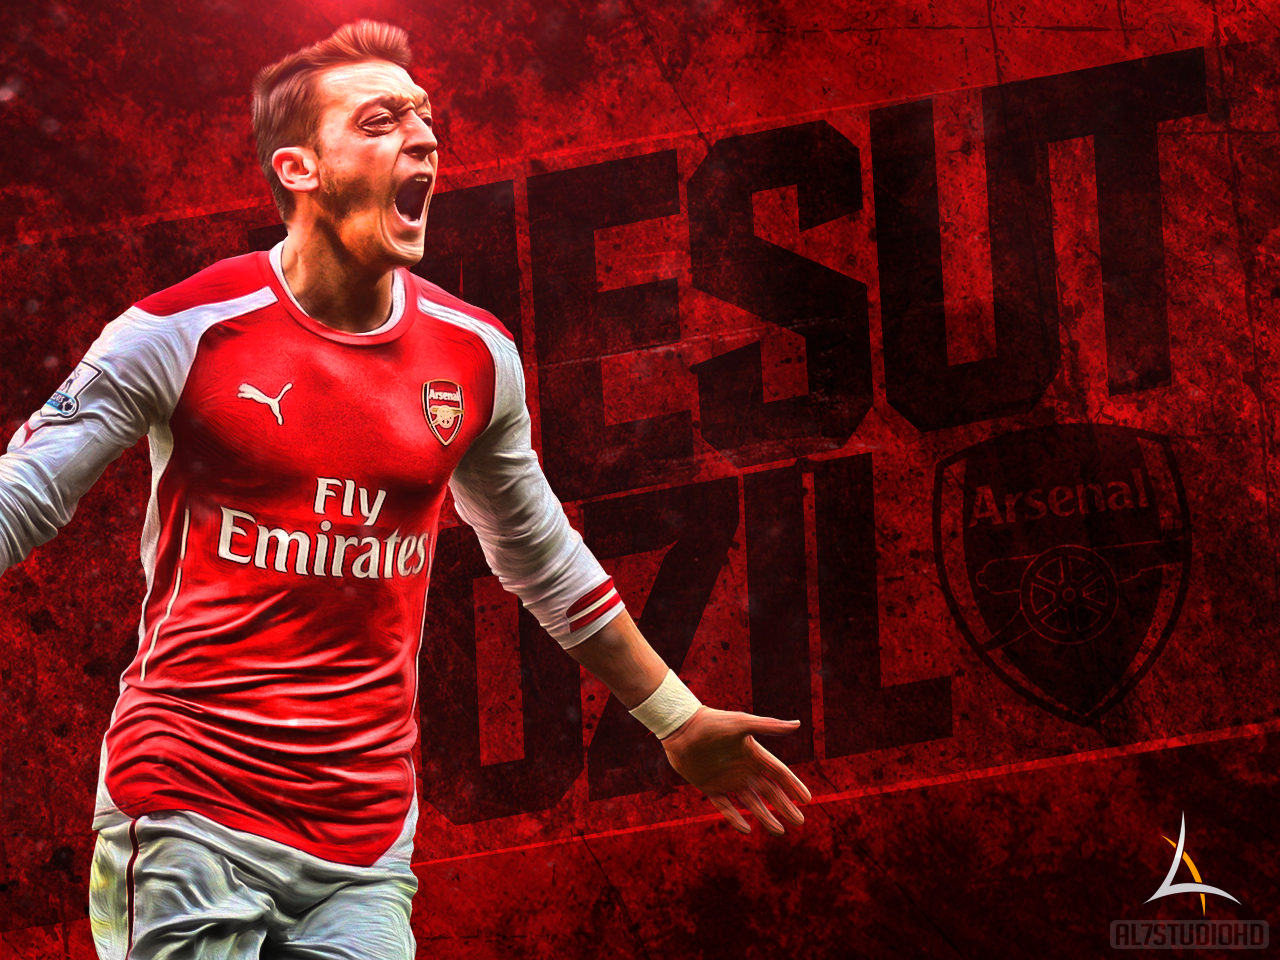 mesut ozil wallpapers and background images - stmed